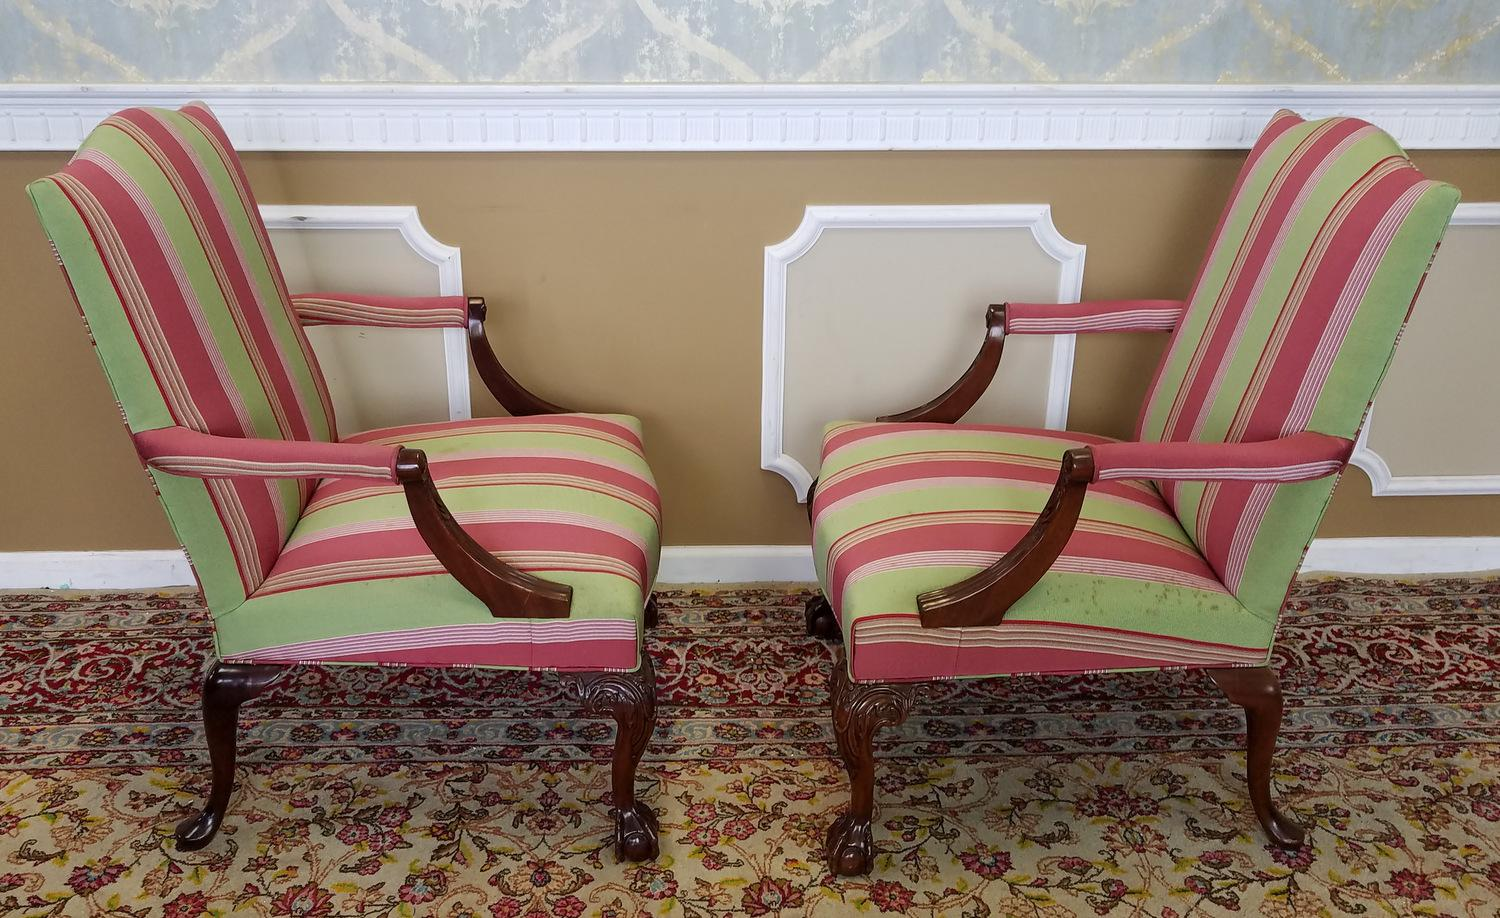 Delicieux Martha Washington Mahogany Chippendale Style Southwood Furniture  Gainsborough Armchairs   A Pair   Image 8 Of